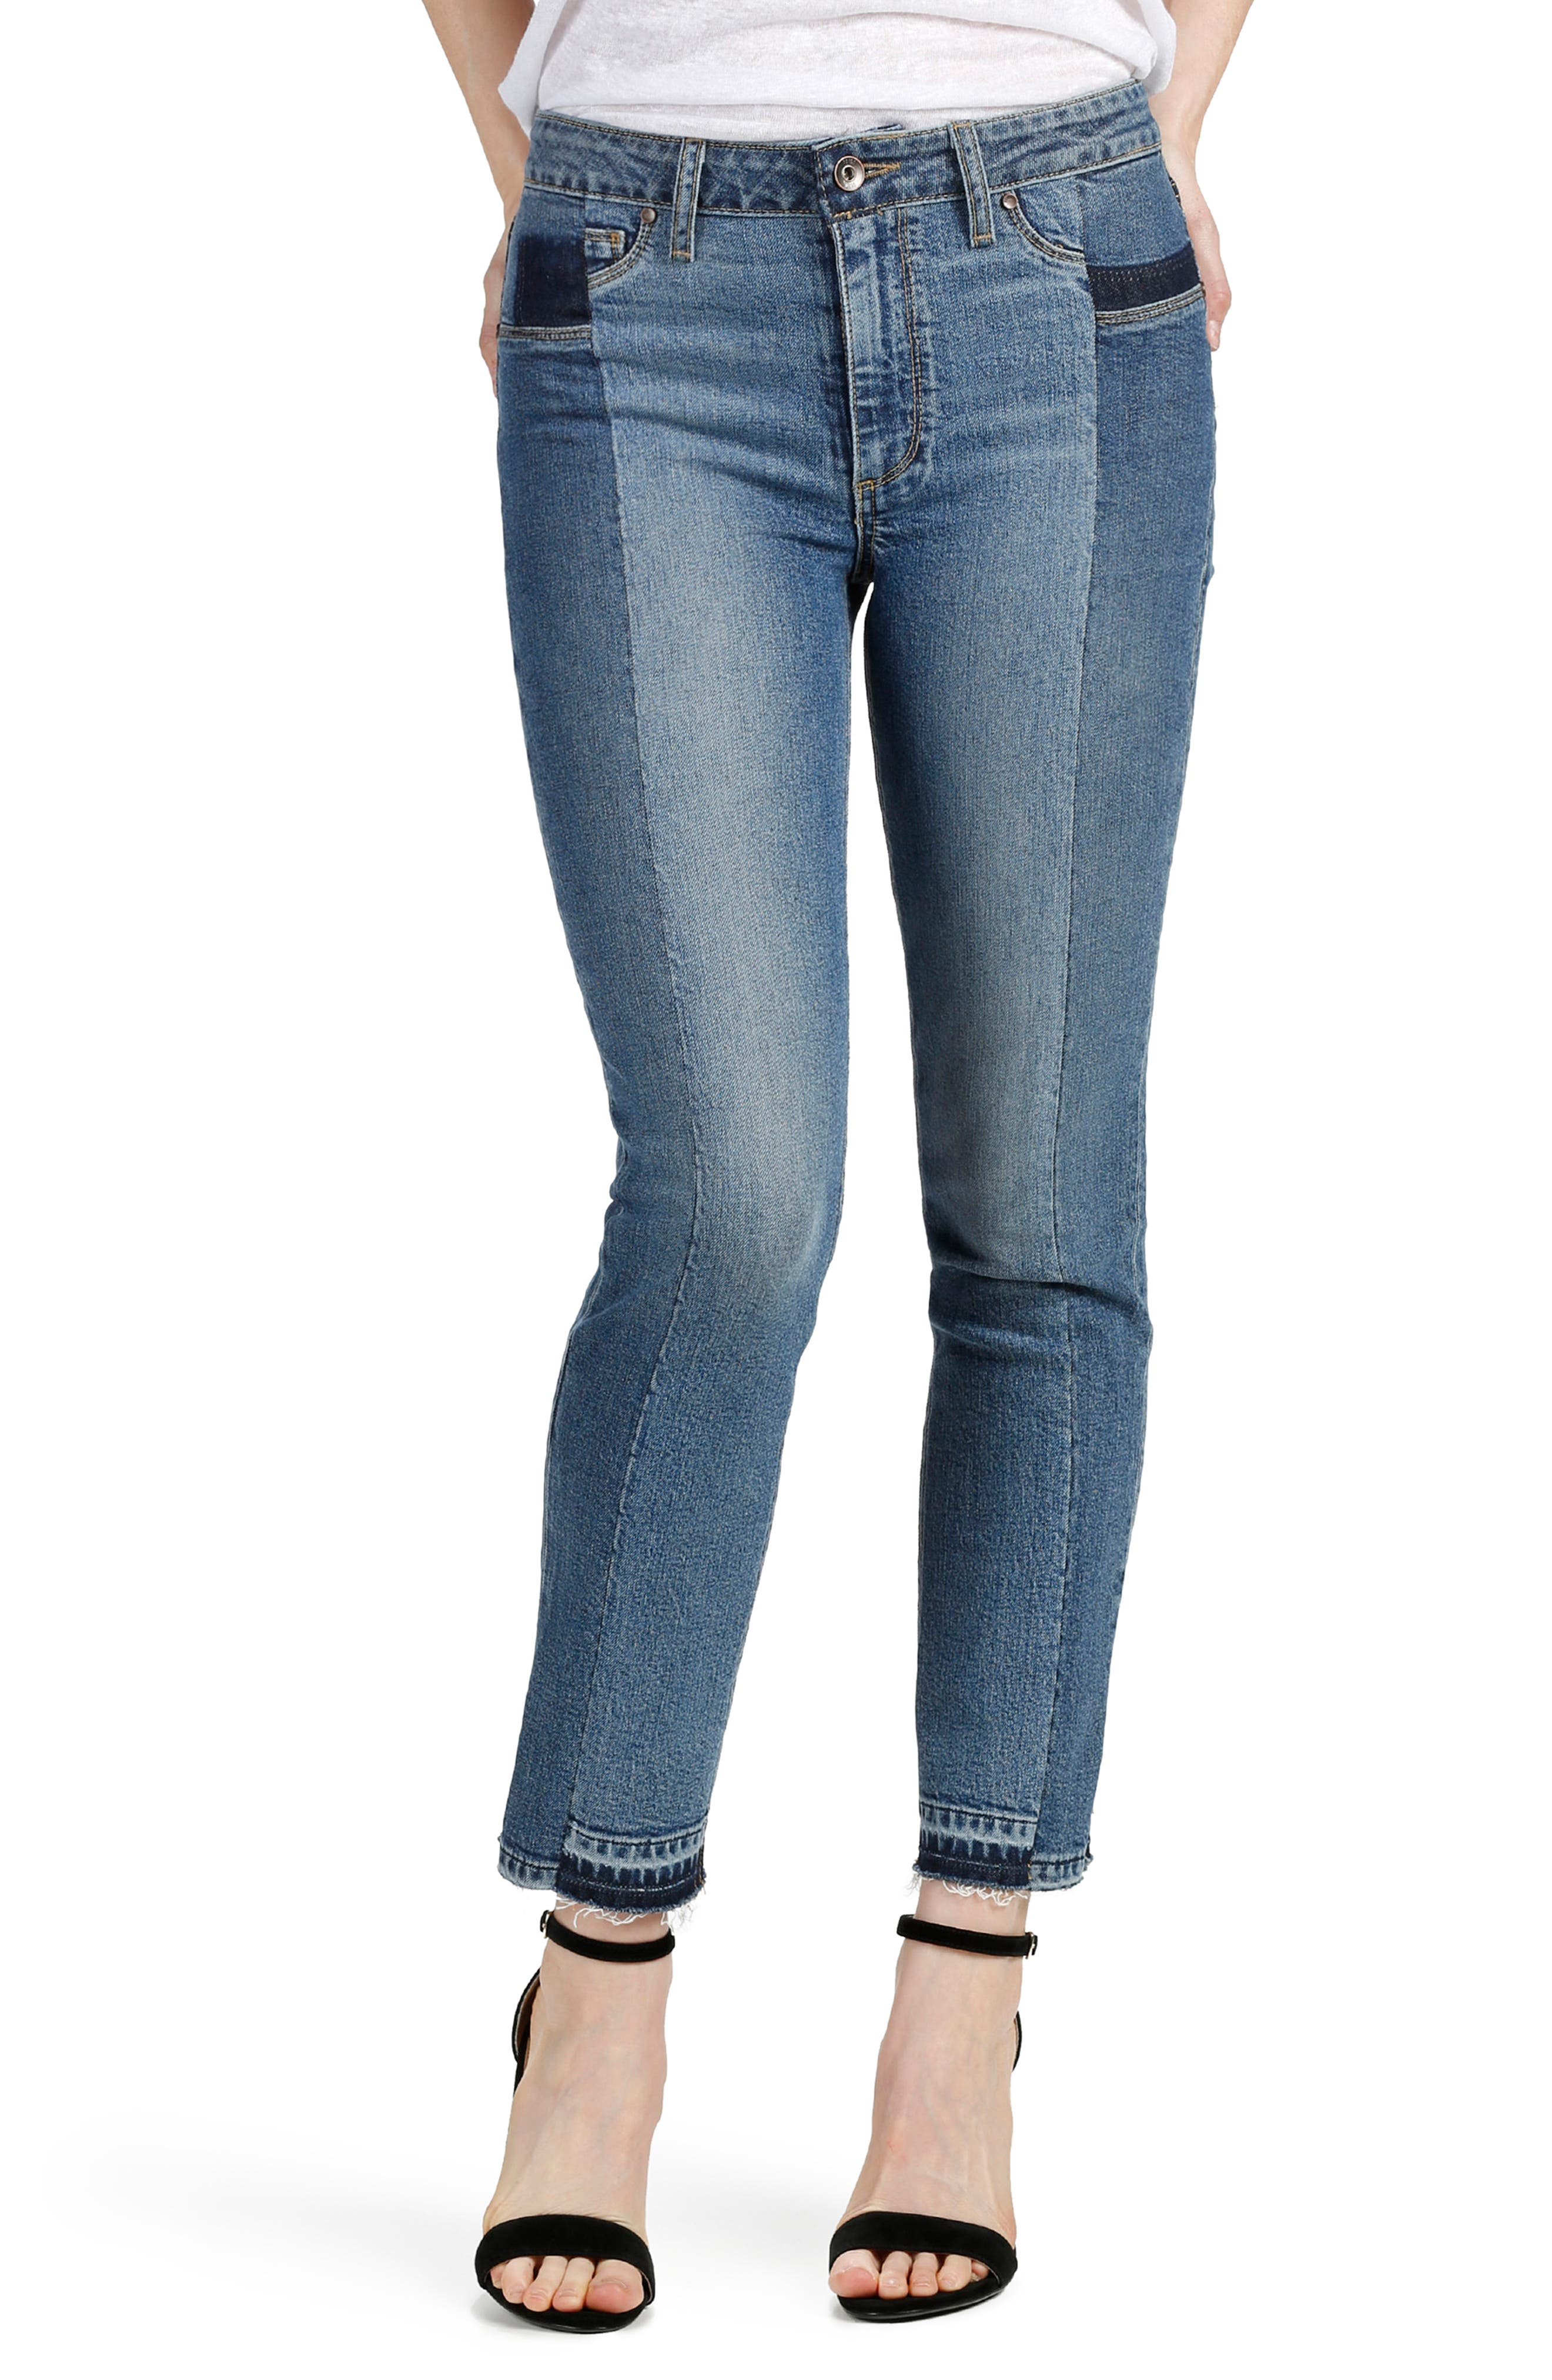 PAIGE Taylor High Waist Straight Leg Jeans